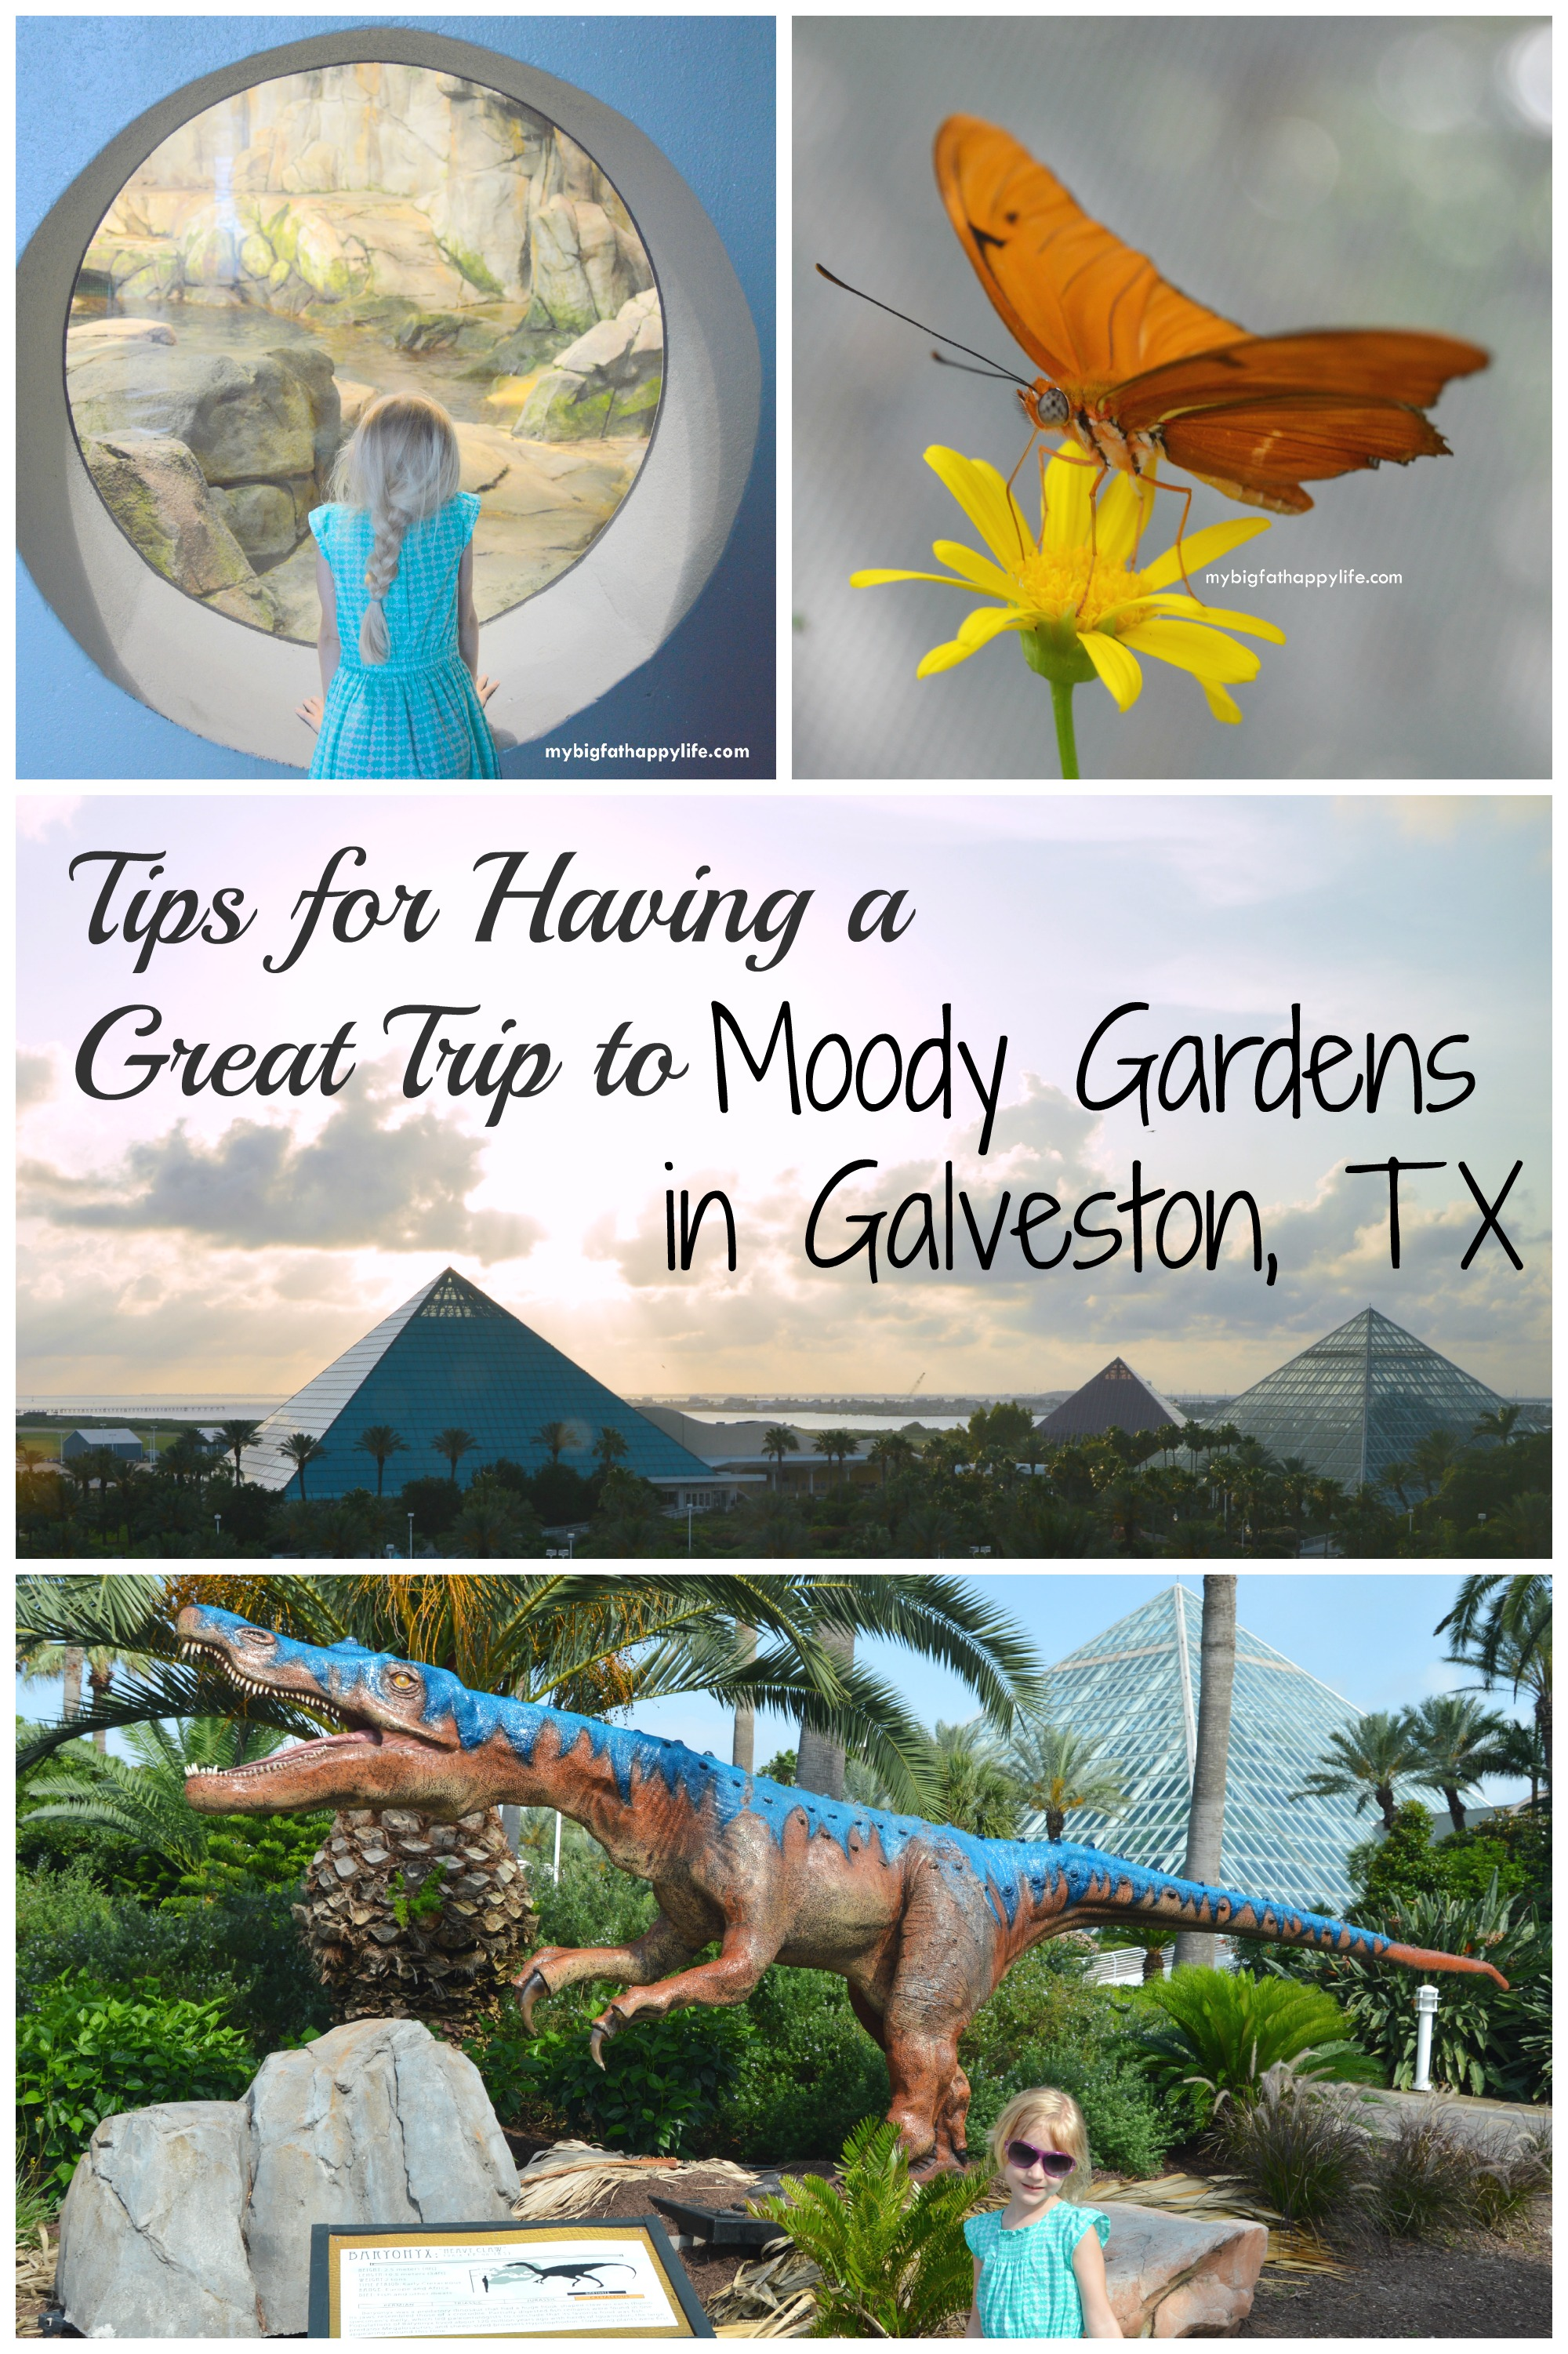 Tips For Having A Great Trip To Moody Gardens Coupon Code Expired My Big Fat Happy Life